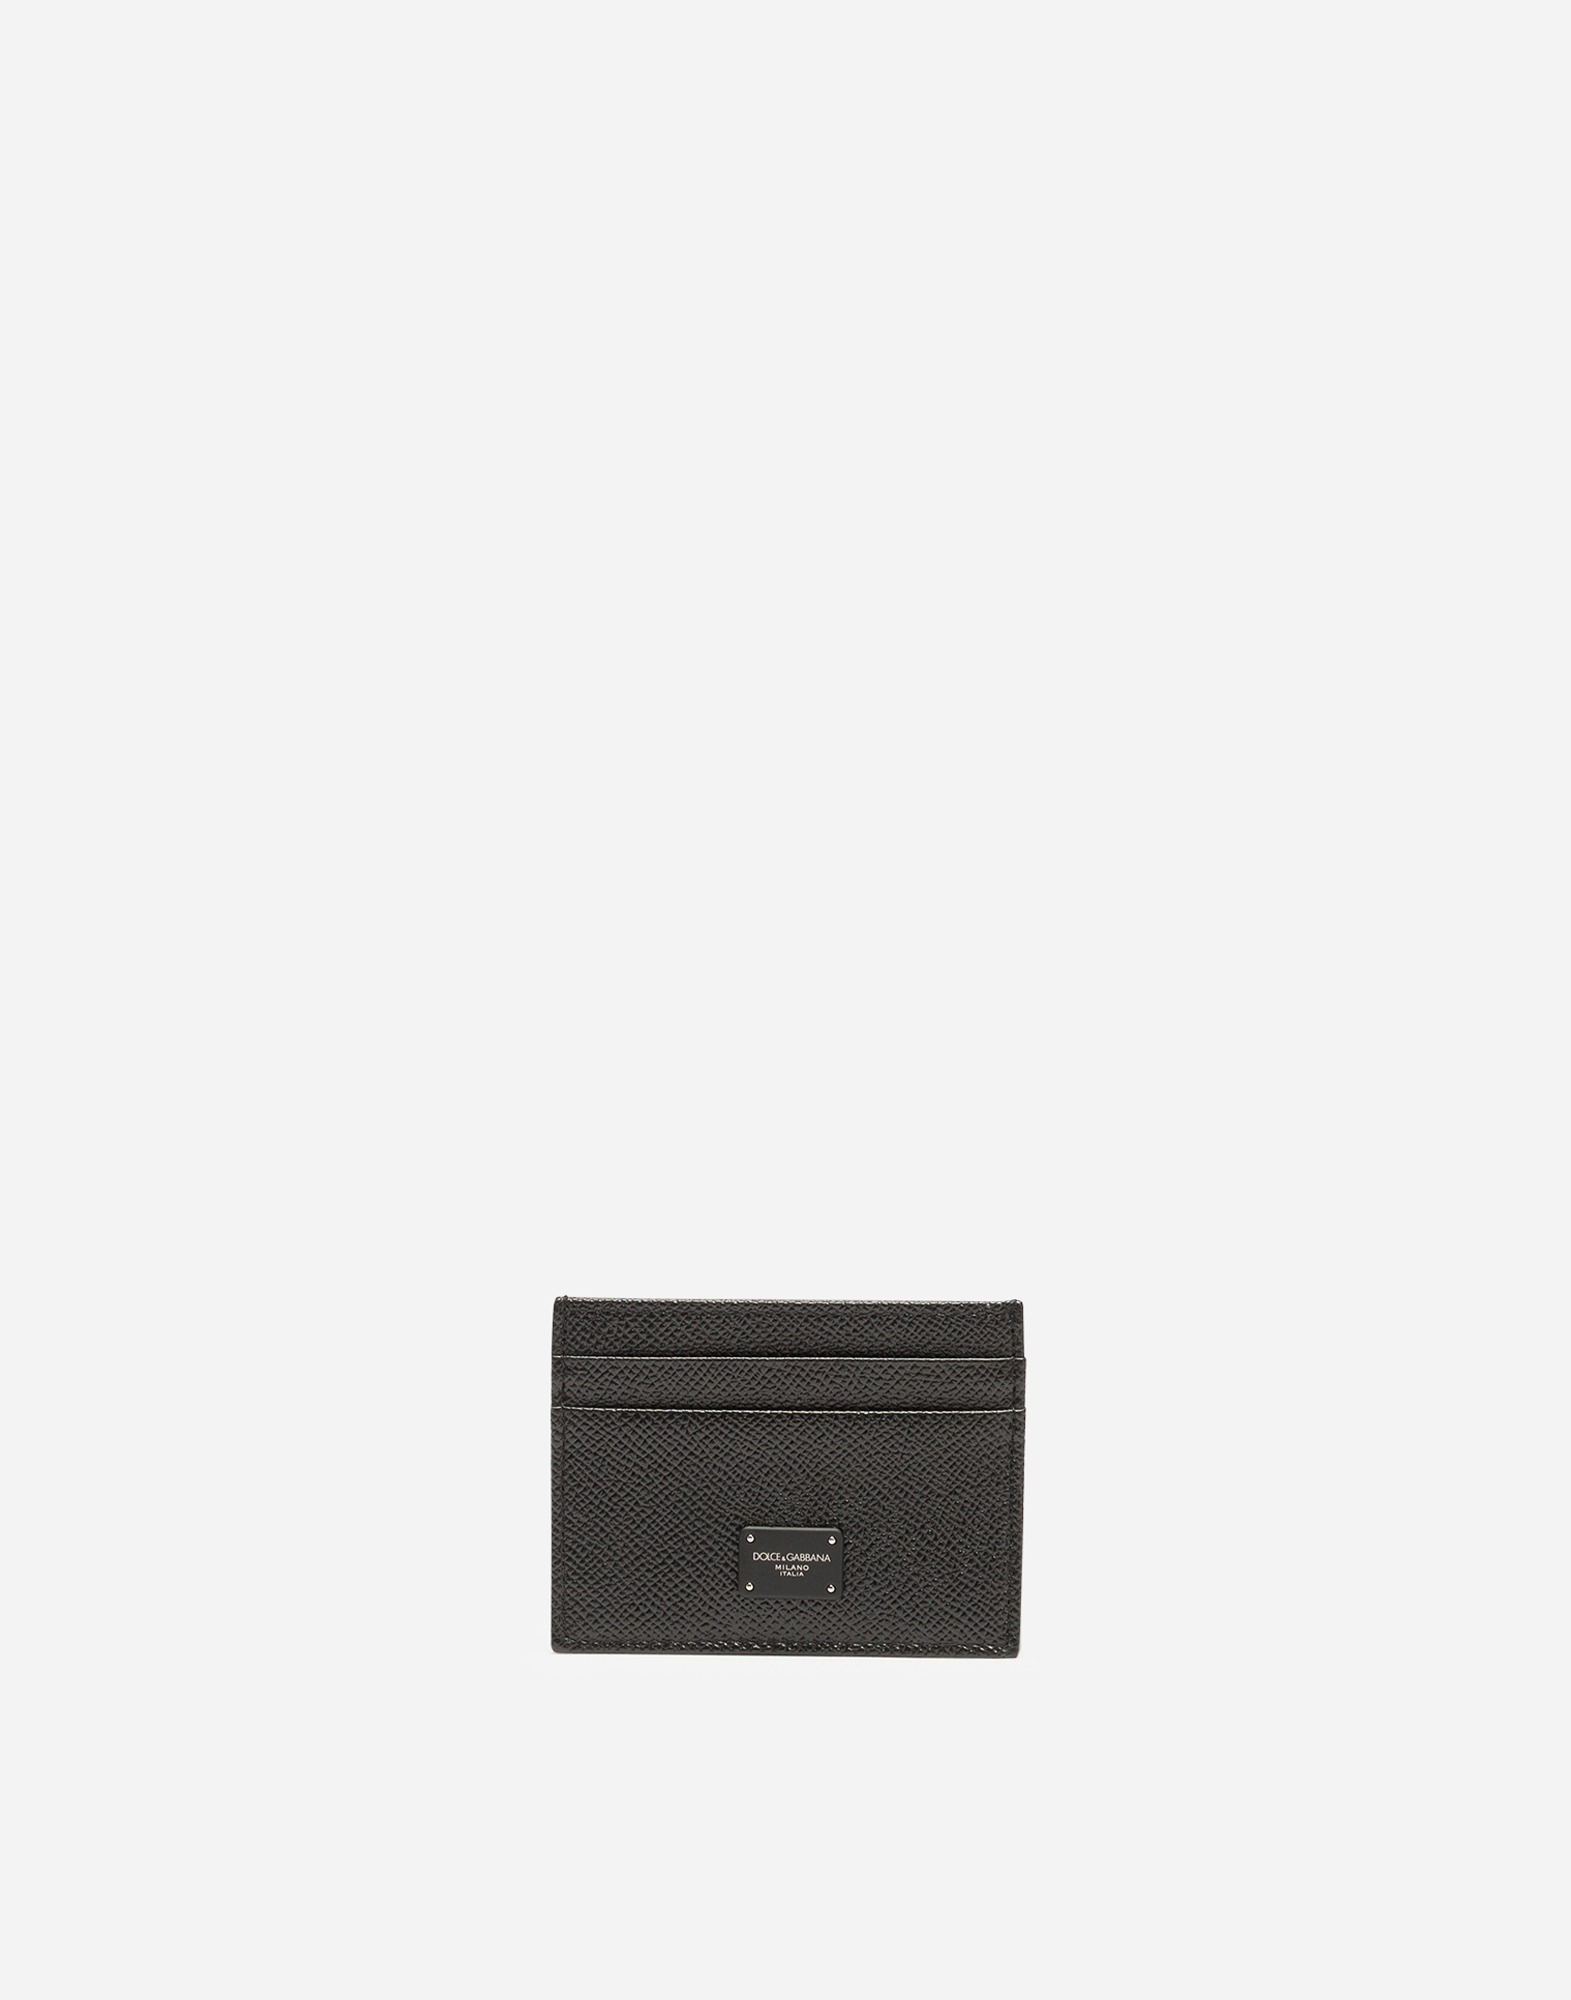 DAUPHINE CALFSKIN CREDIT CARD HOLDER